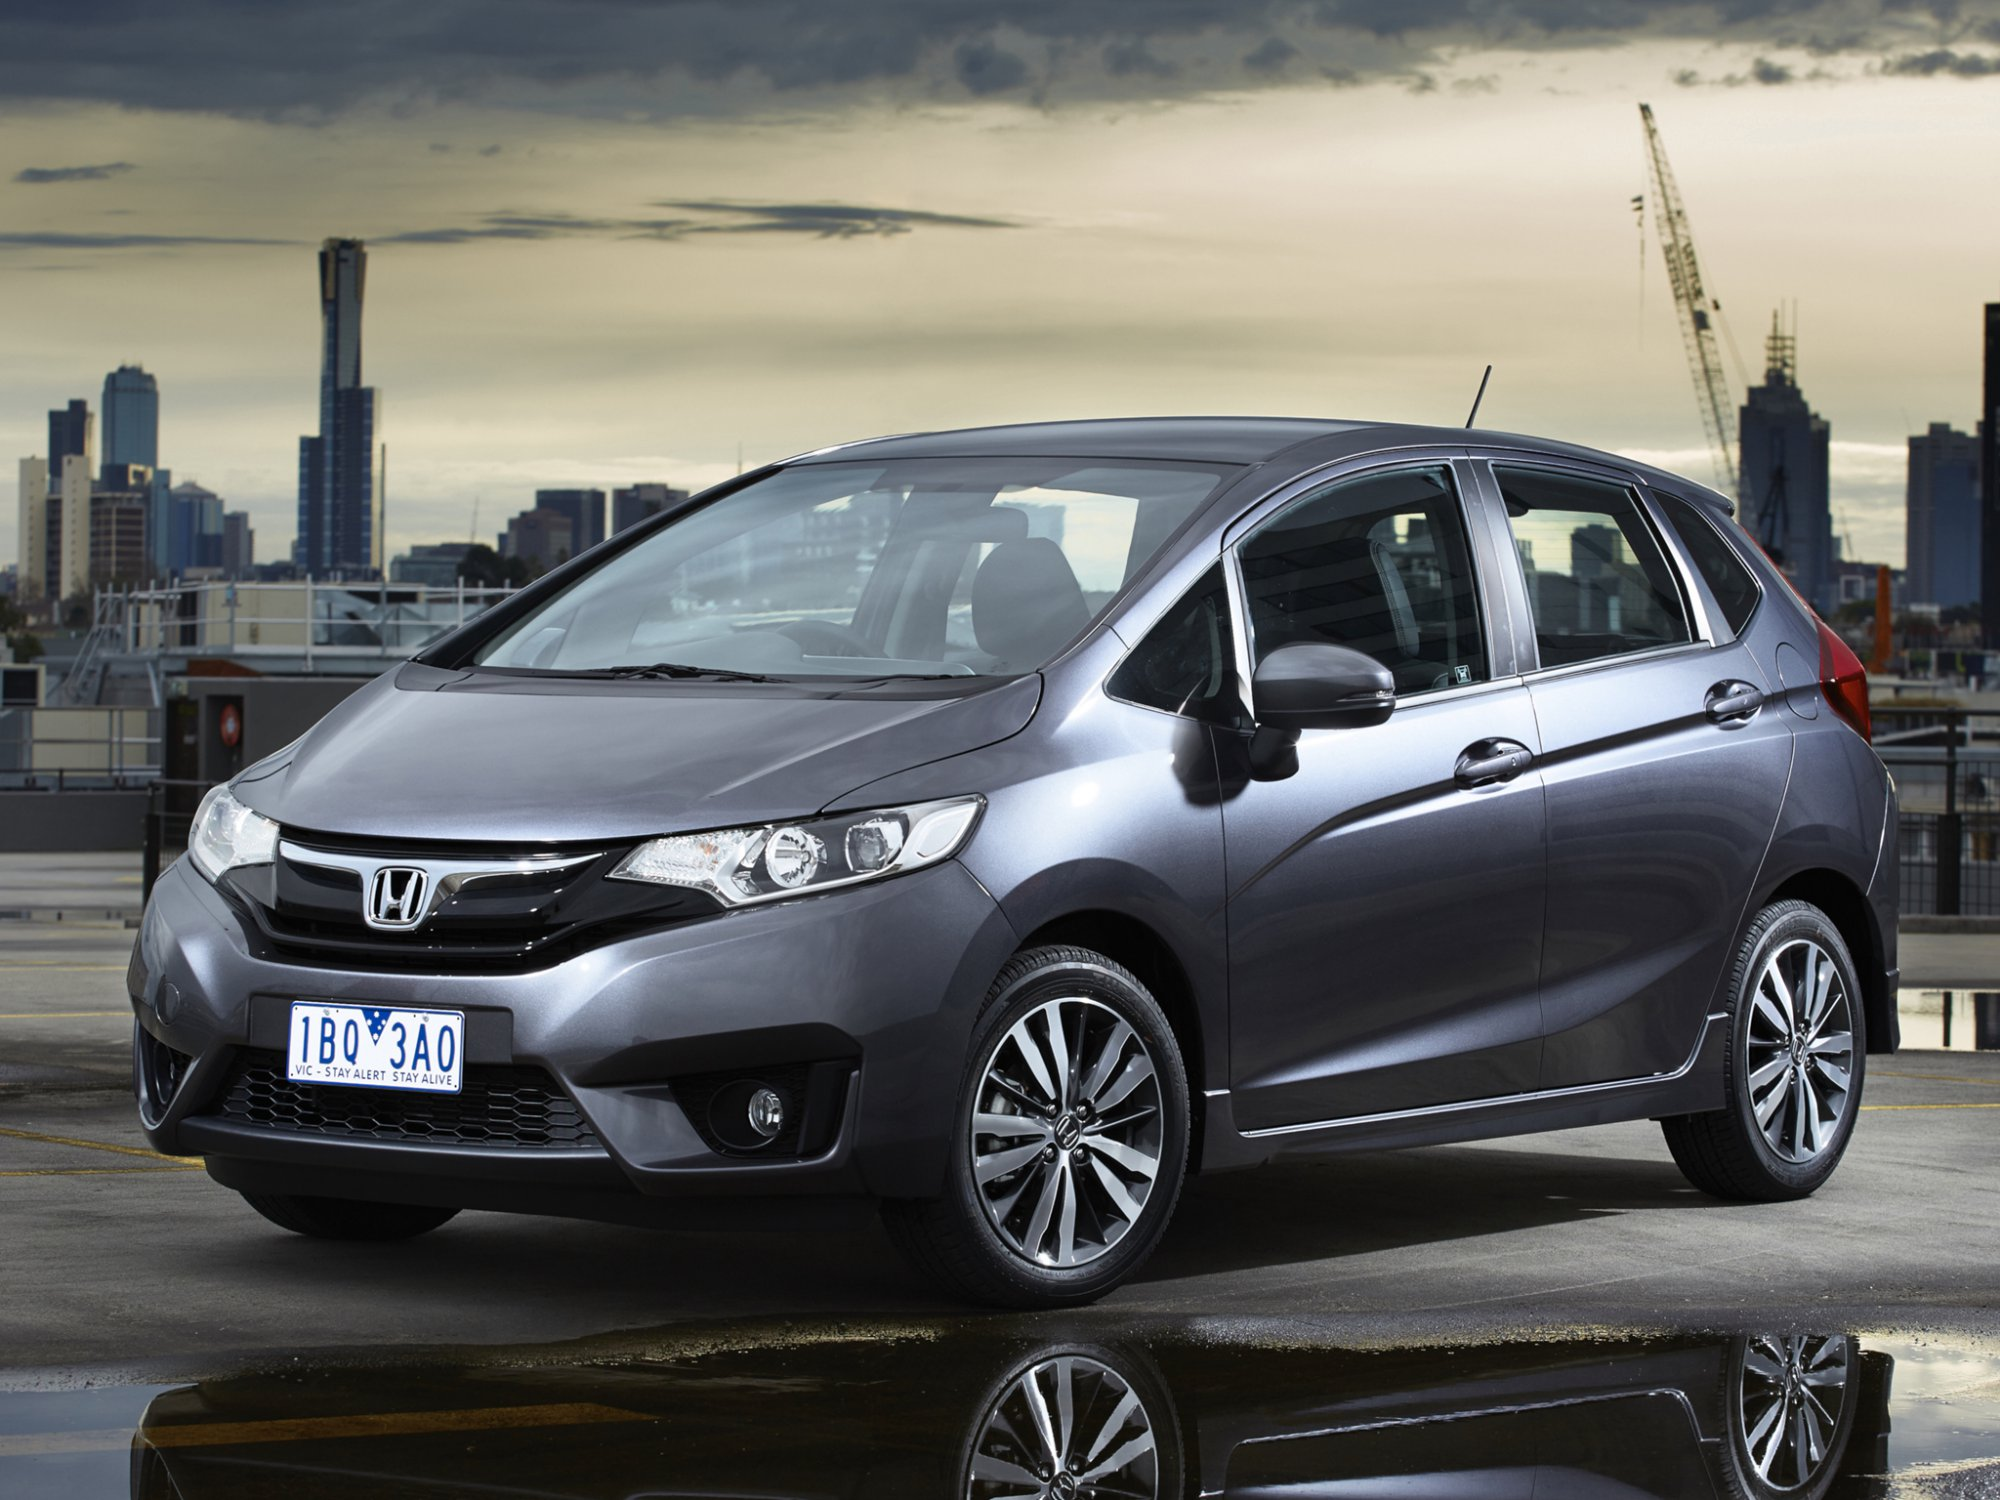 Review - 2016 Honda Jazz - Review